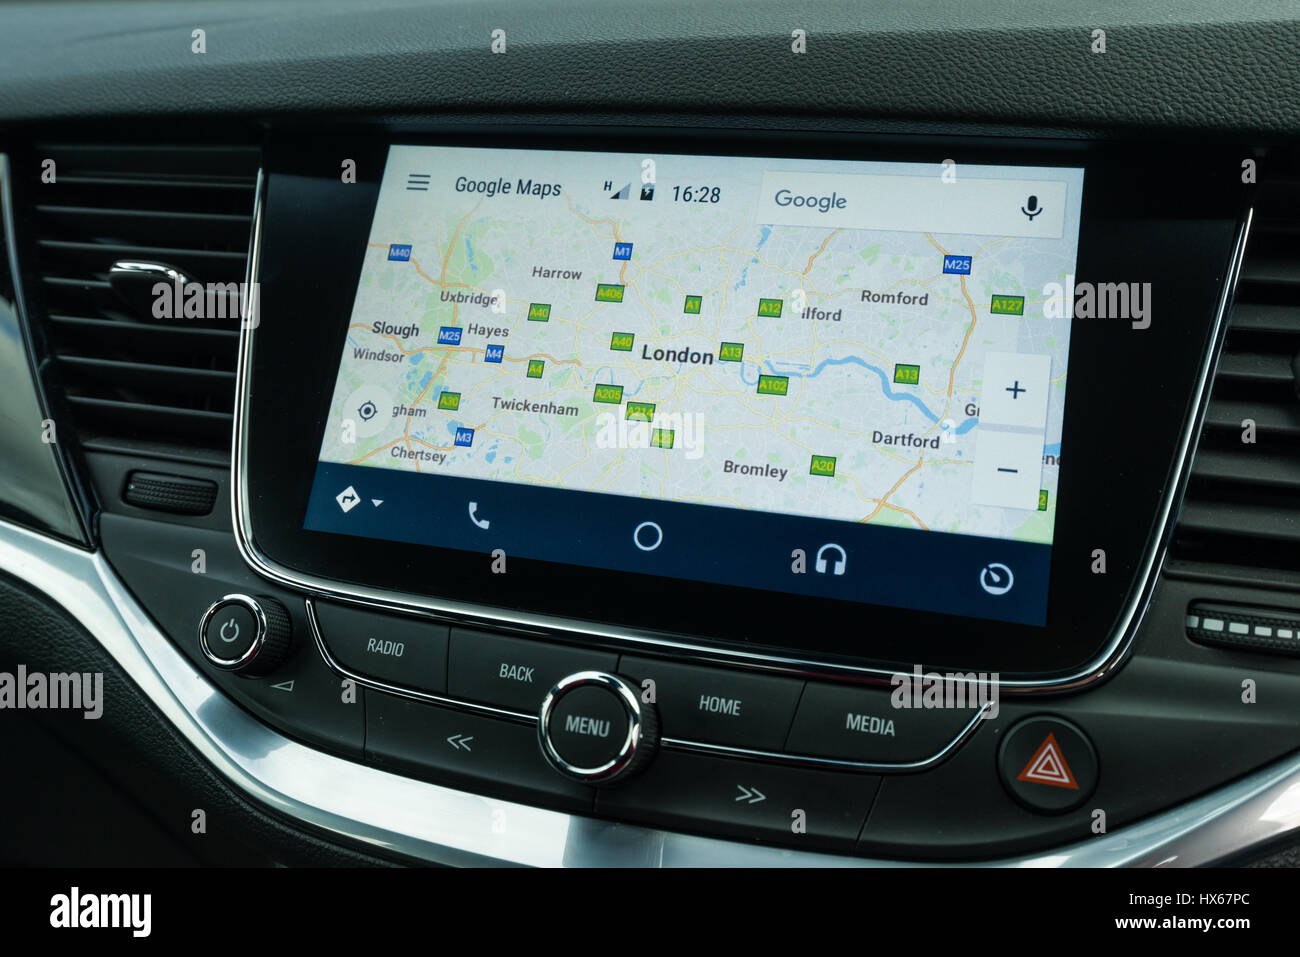 Google Maps And Car Stock Photos & Google Maps And Car Stock ... on google map marseille, land navigation, google places, openstreetmap navigation, google navigation app, phone navigation, google search navigation, google india map, google map manitoba canada, google map of alberta, google map texas a&m, google map pin, google search mapquest, here navigation, google now traffic, google earth, gps navigation, google satellite map, google quick search box, google map example,